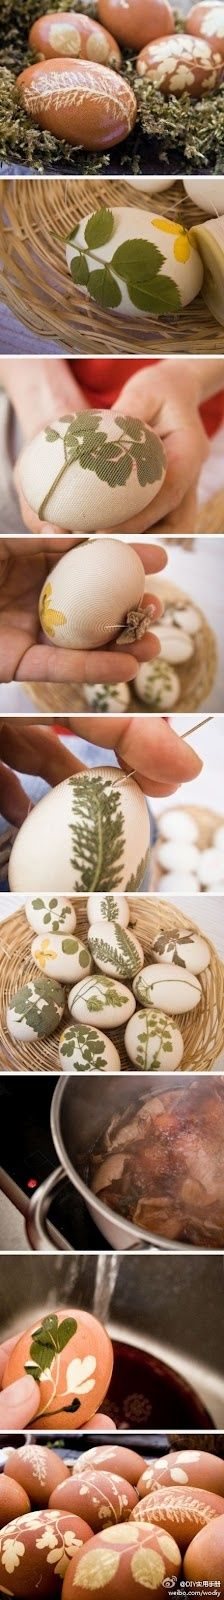 Ovos decorados (love these earthy looking Easter eggs) Easter Crafts, Holiday Crafts, Holiday Fun, Fun Crafts, Diy And Crafts, Crafts For Kids, Easter Ideas, Easter Dyi, Easter Brunch